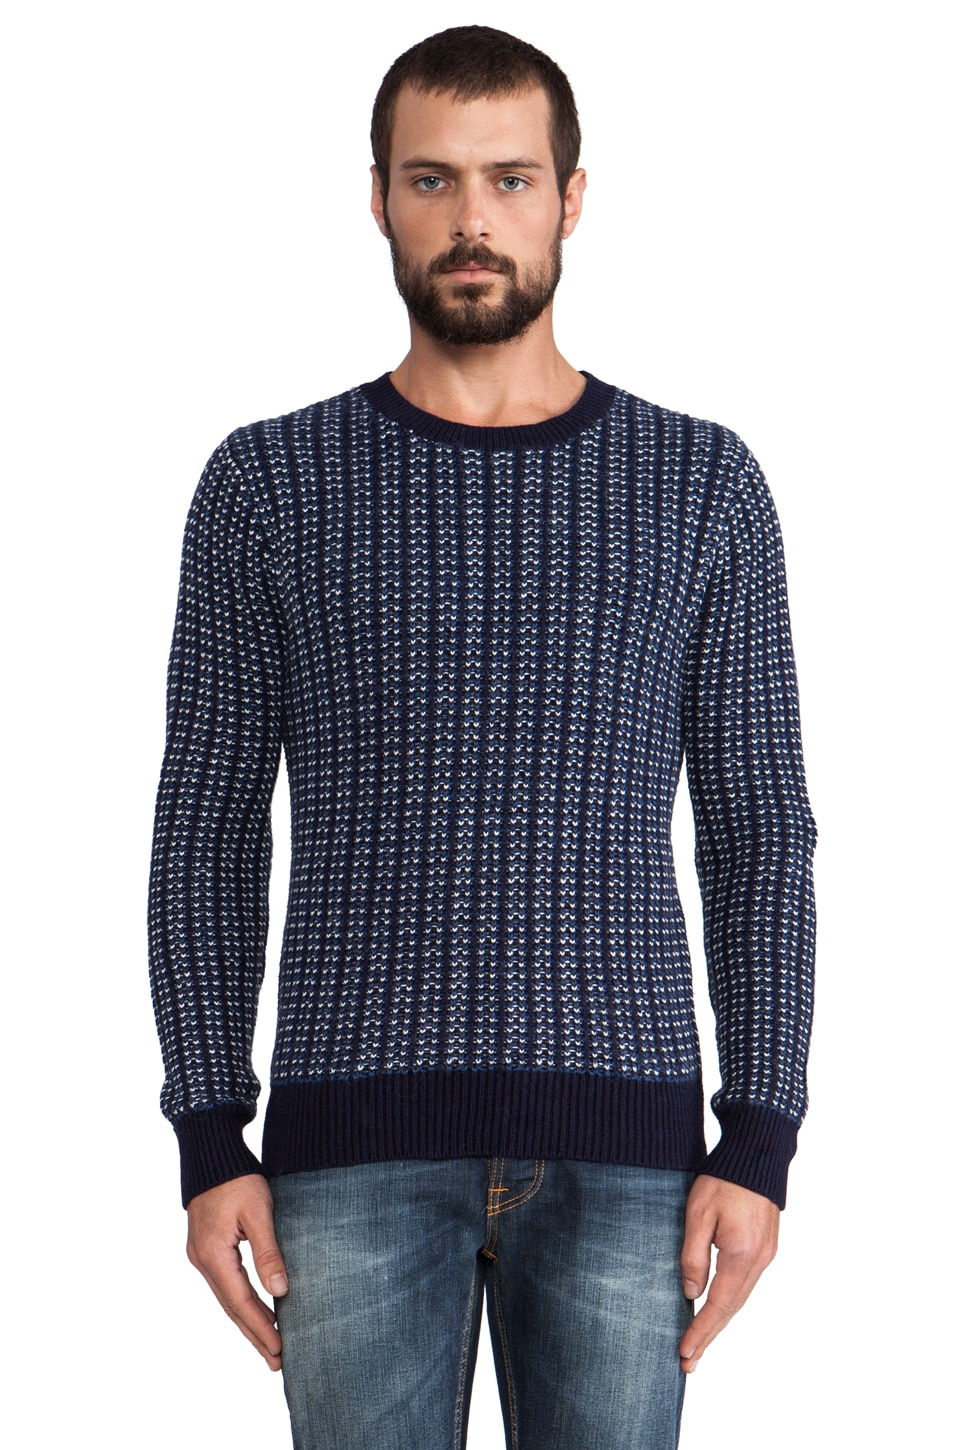 GANT Rugger Fisherman Crew Knit in Navy